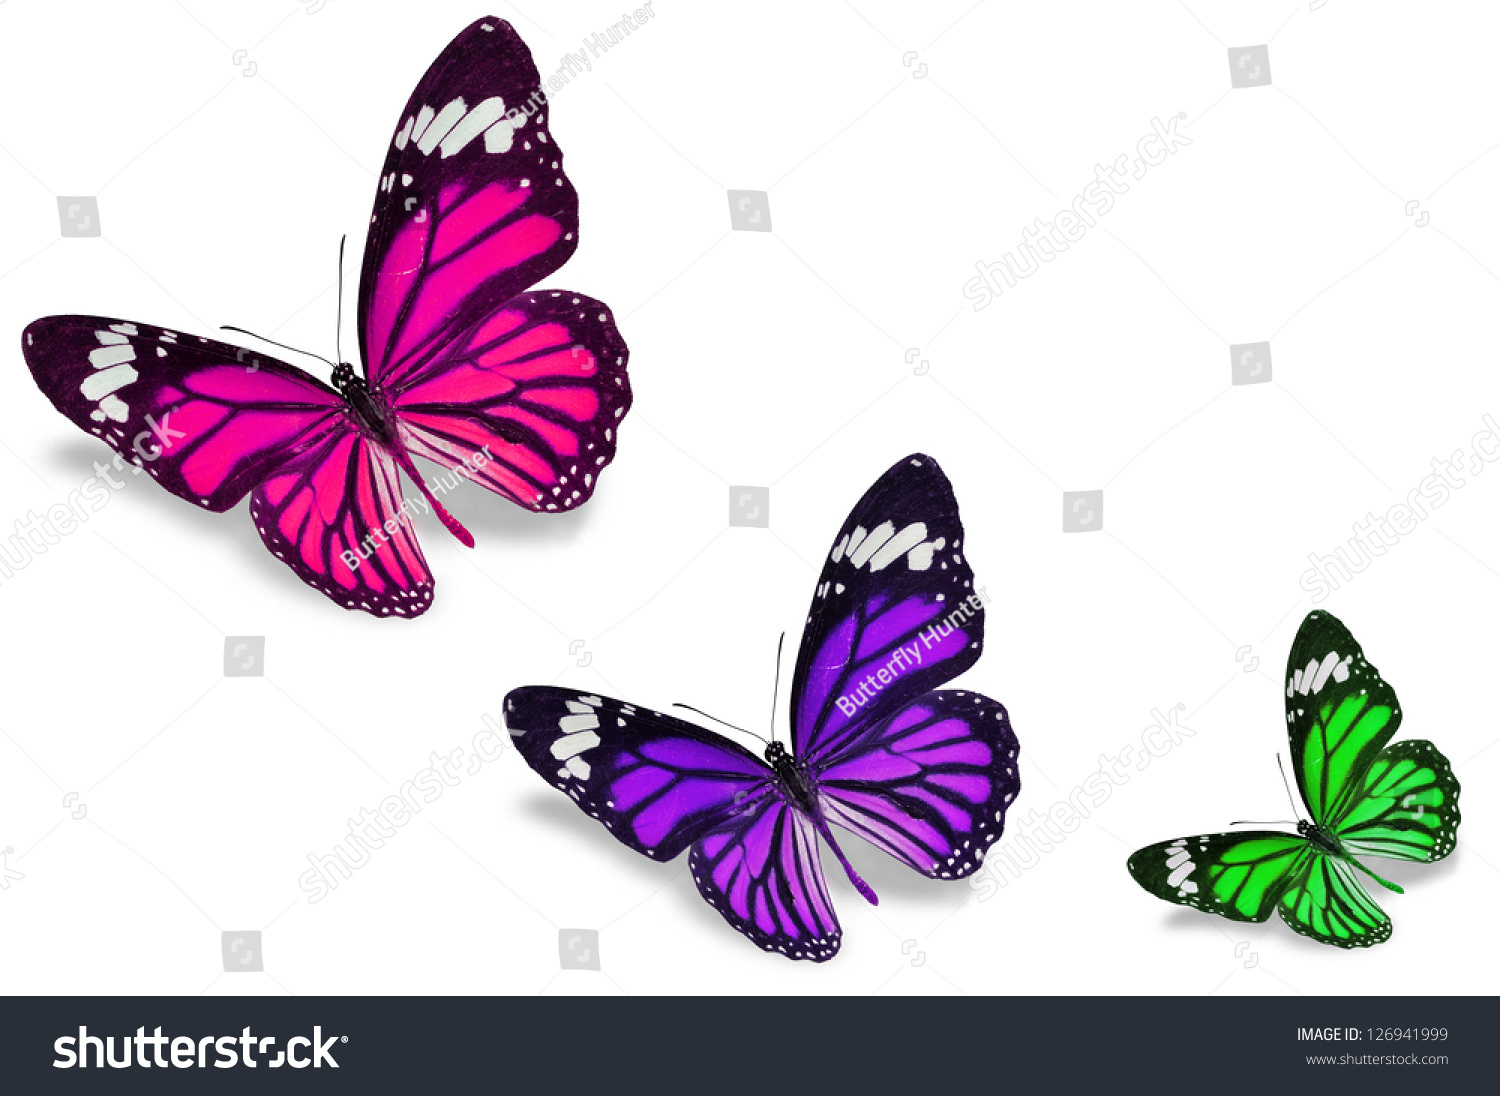 Colorful Butterflies Stock Photo 126941999 - Shutterstock